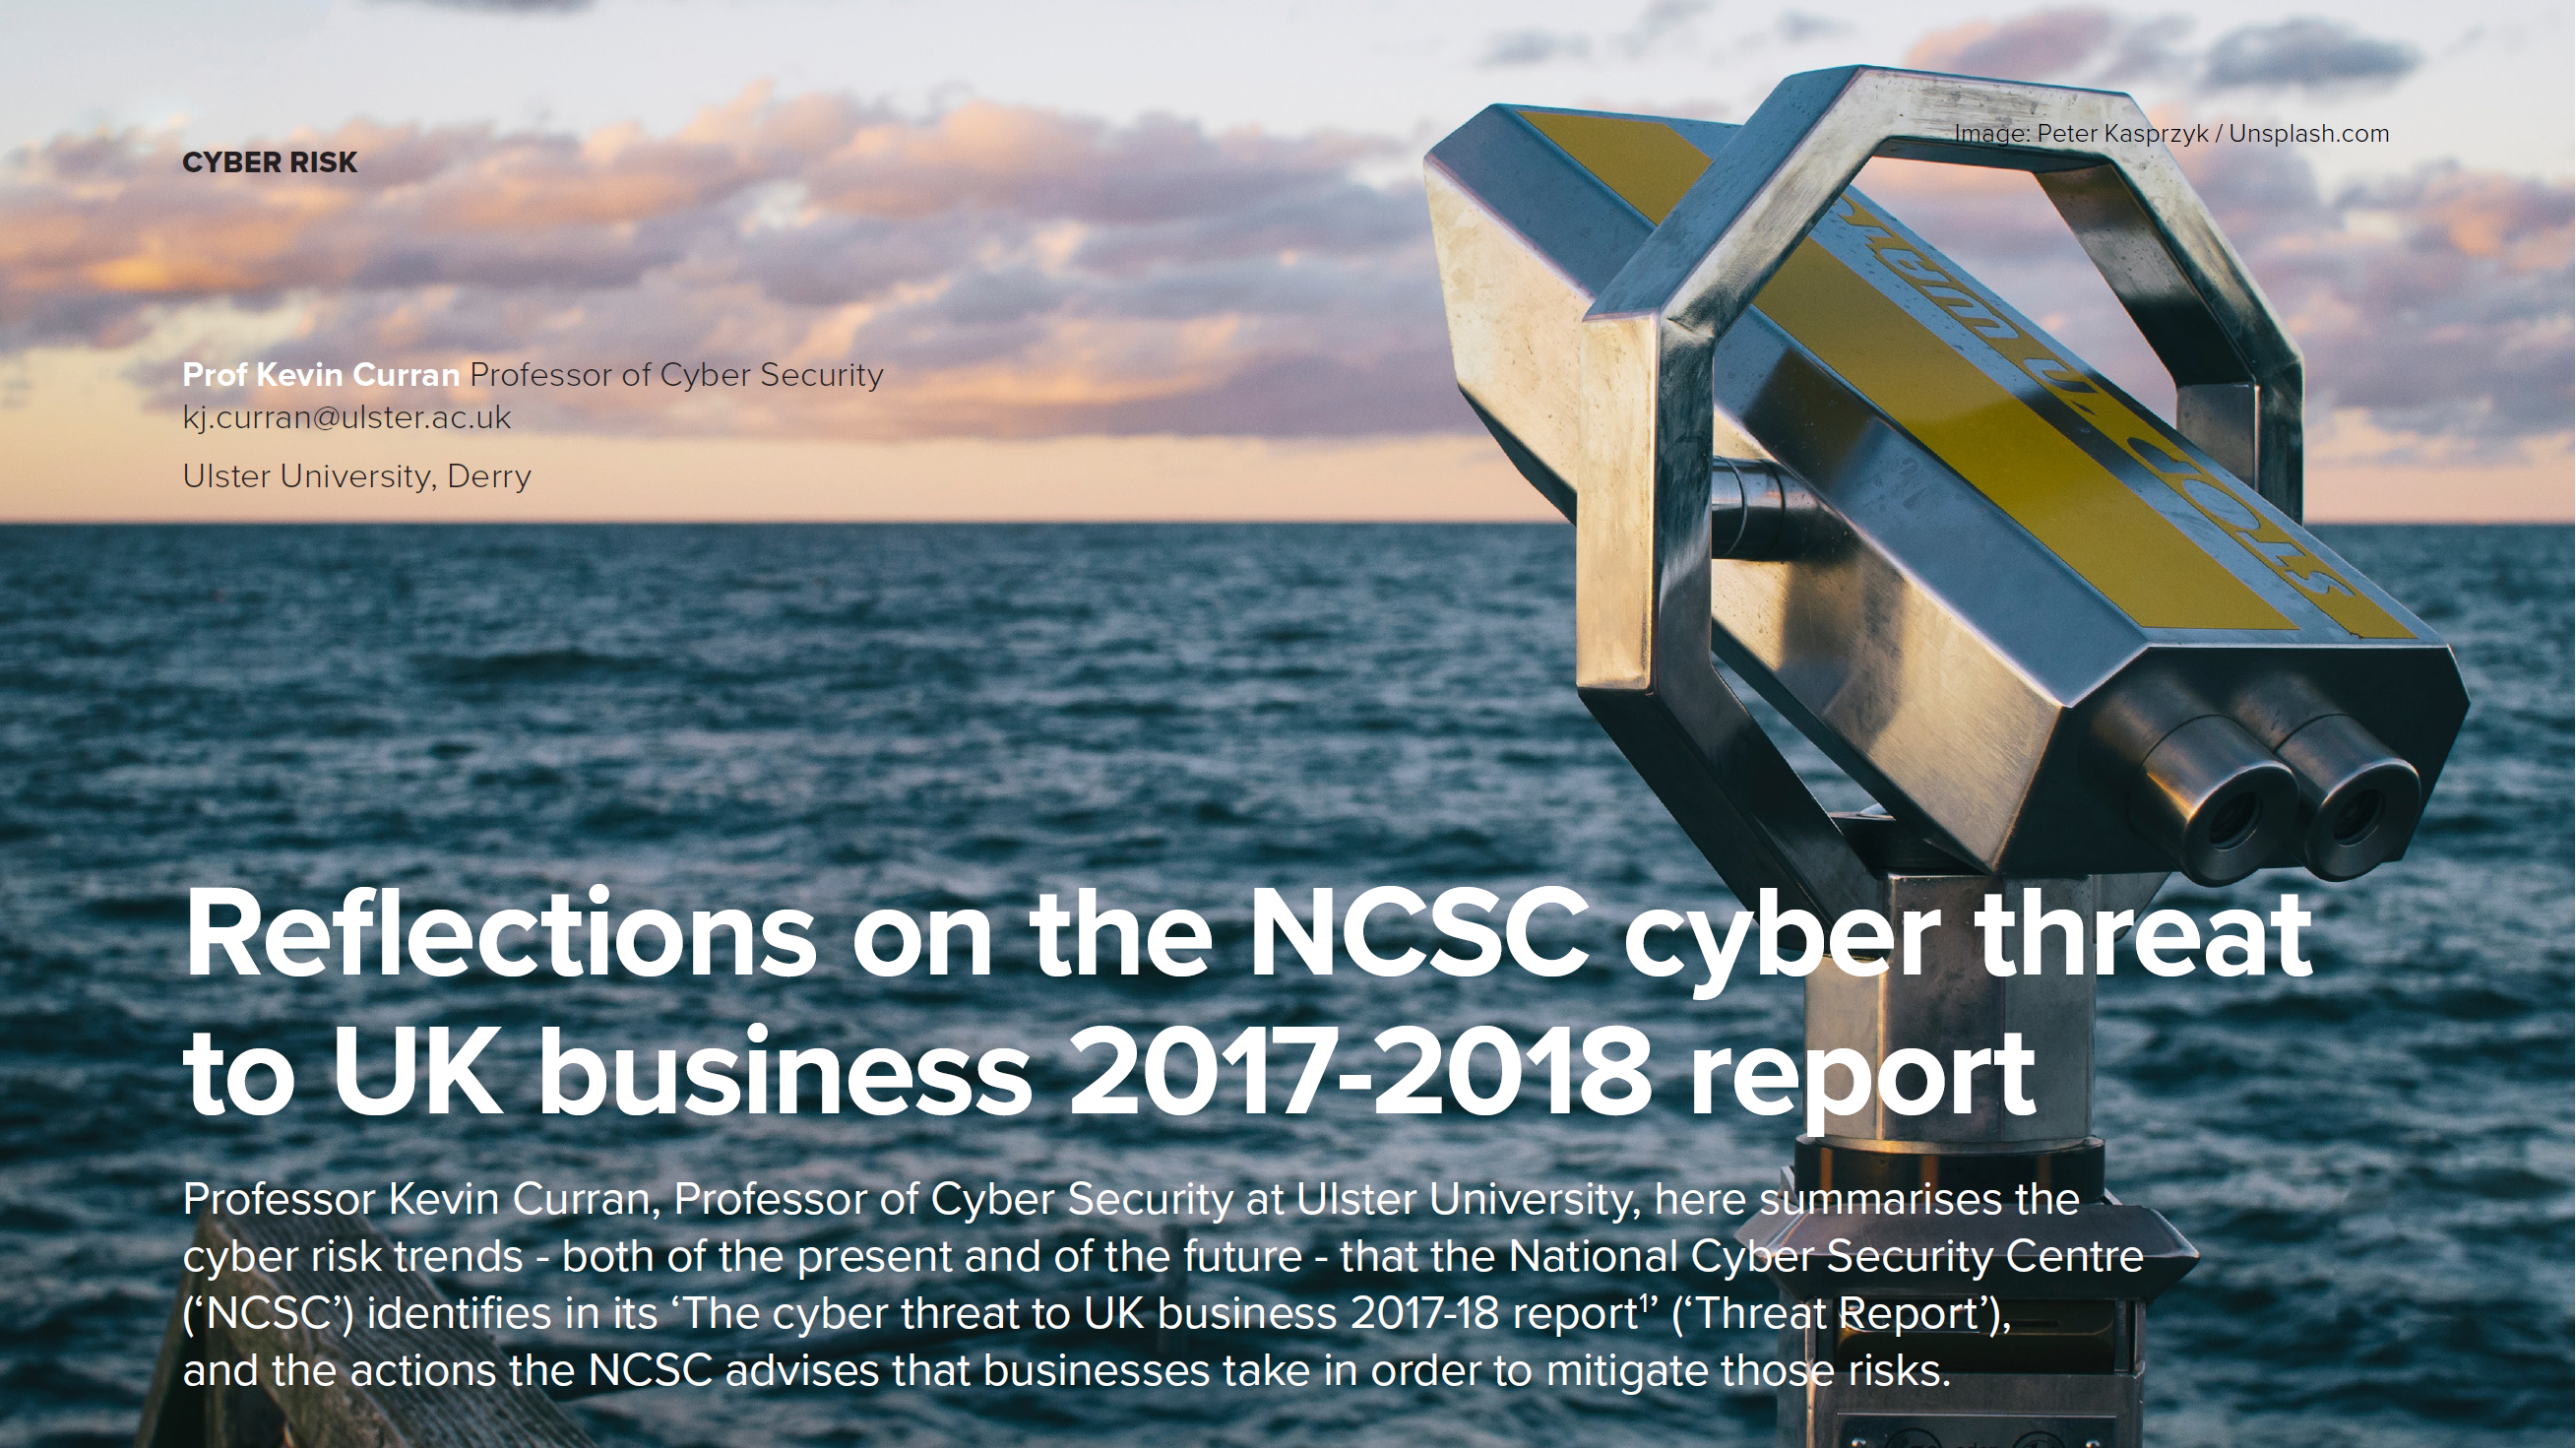 Professor Kevin Curran, Ulster University in an interview with Cyber Security Practitioner on the cyber risk trends that the National Cyber Security Centre (NCSC) identified in its recent Threat Report.